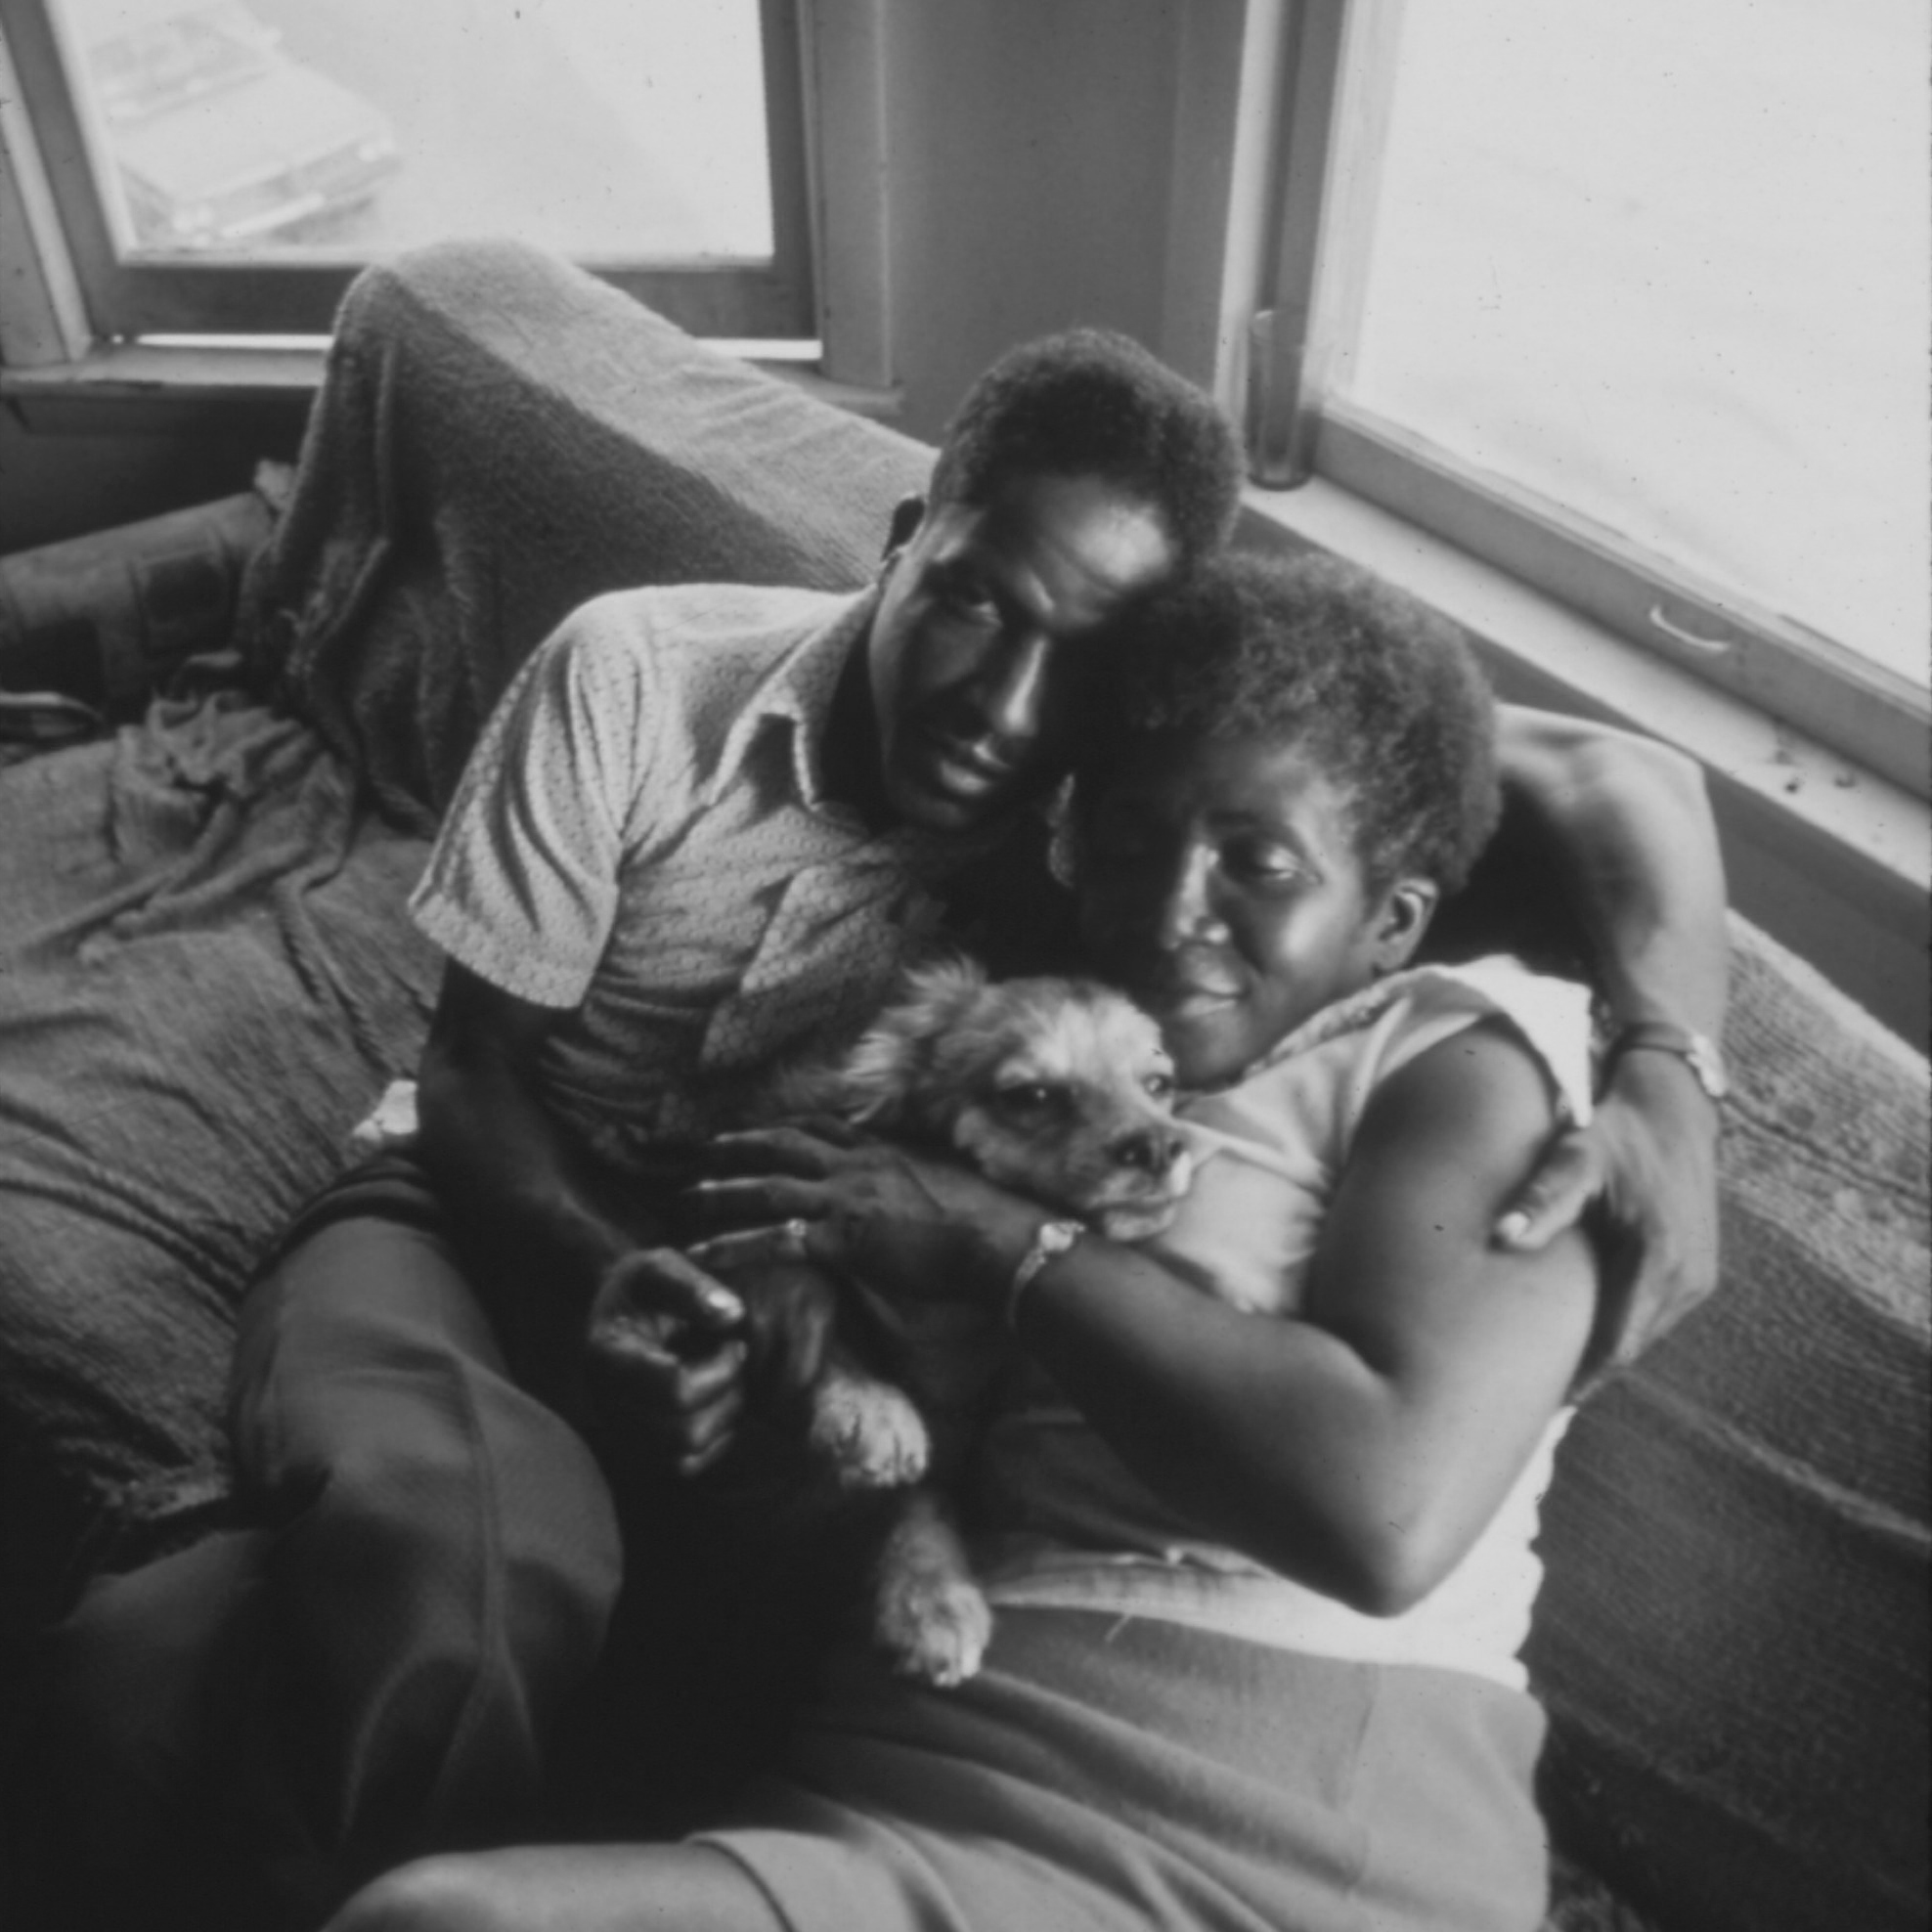 BLACK_COUPLE_AND_THEIR_DOG_IN_THEIR_APARTMENT_IN_SOUTH_SIDE_CHICAGO._FROM_1960_TO_1970_THE_PERCENTAG